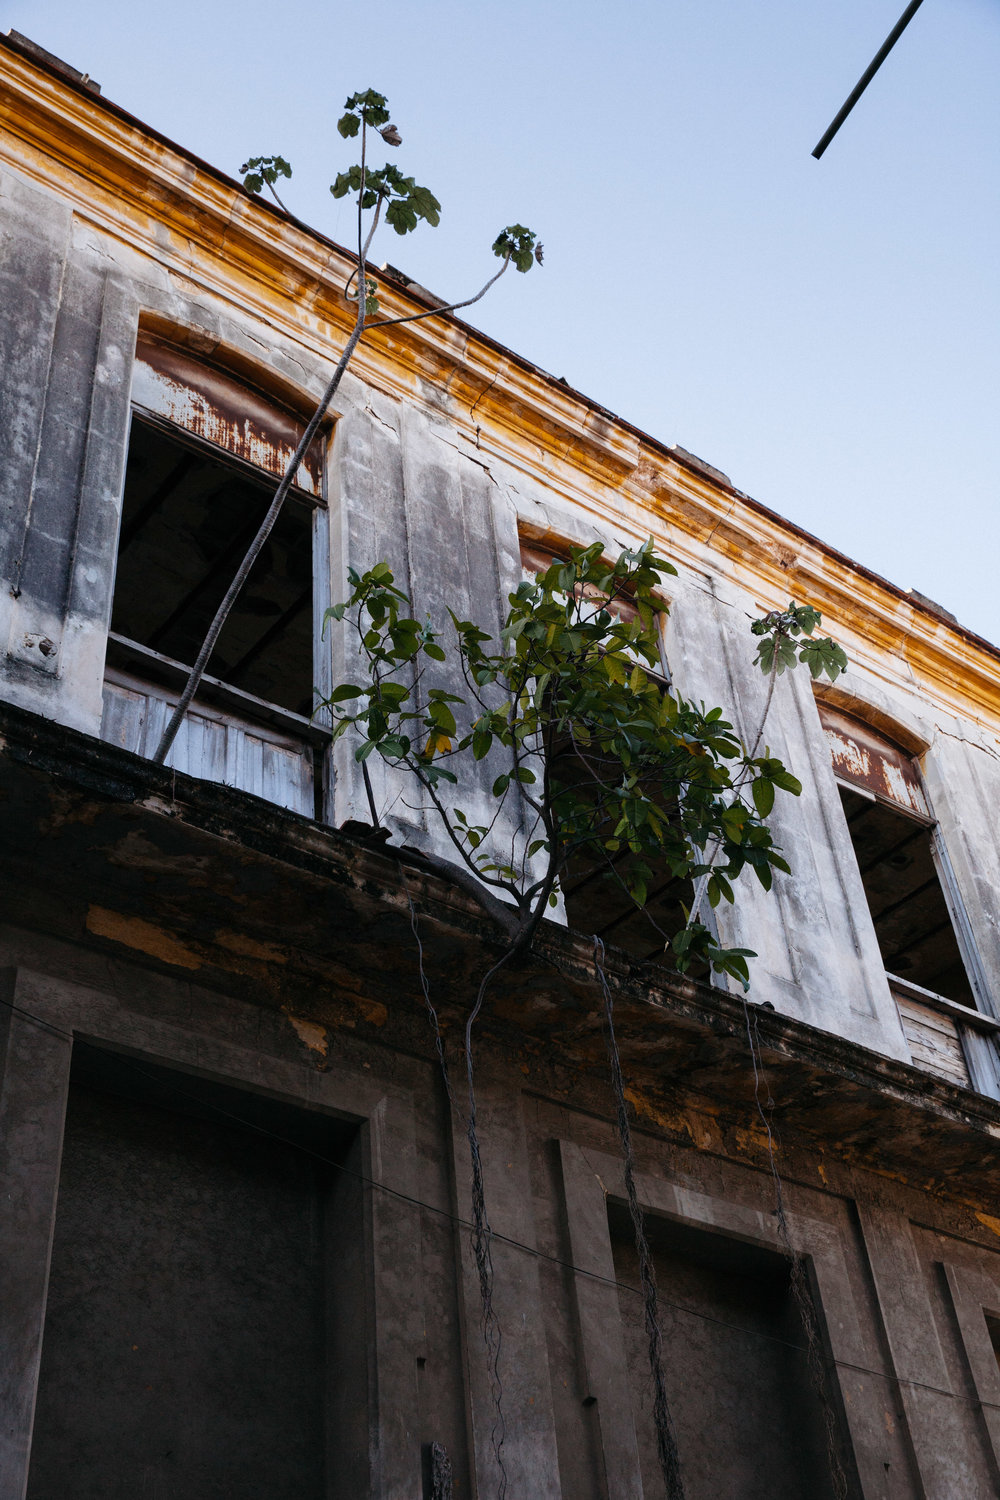 Plants grow out of abandoned buildings in Havana, Cuba.